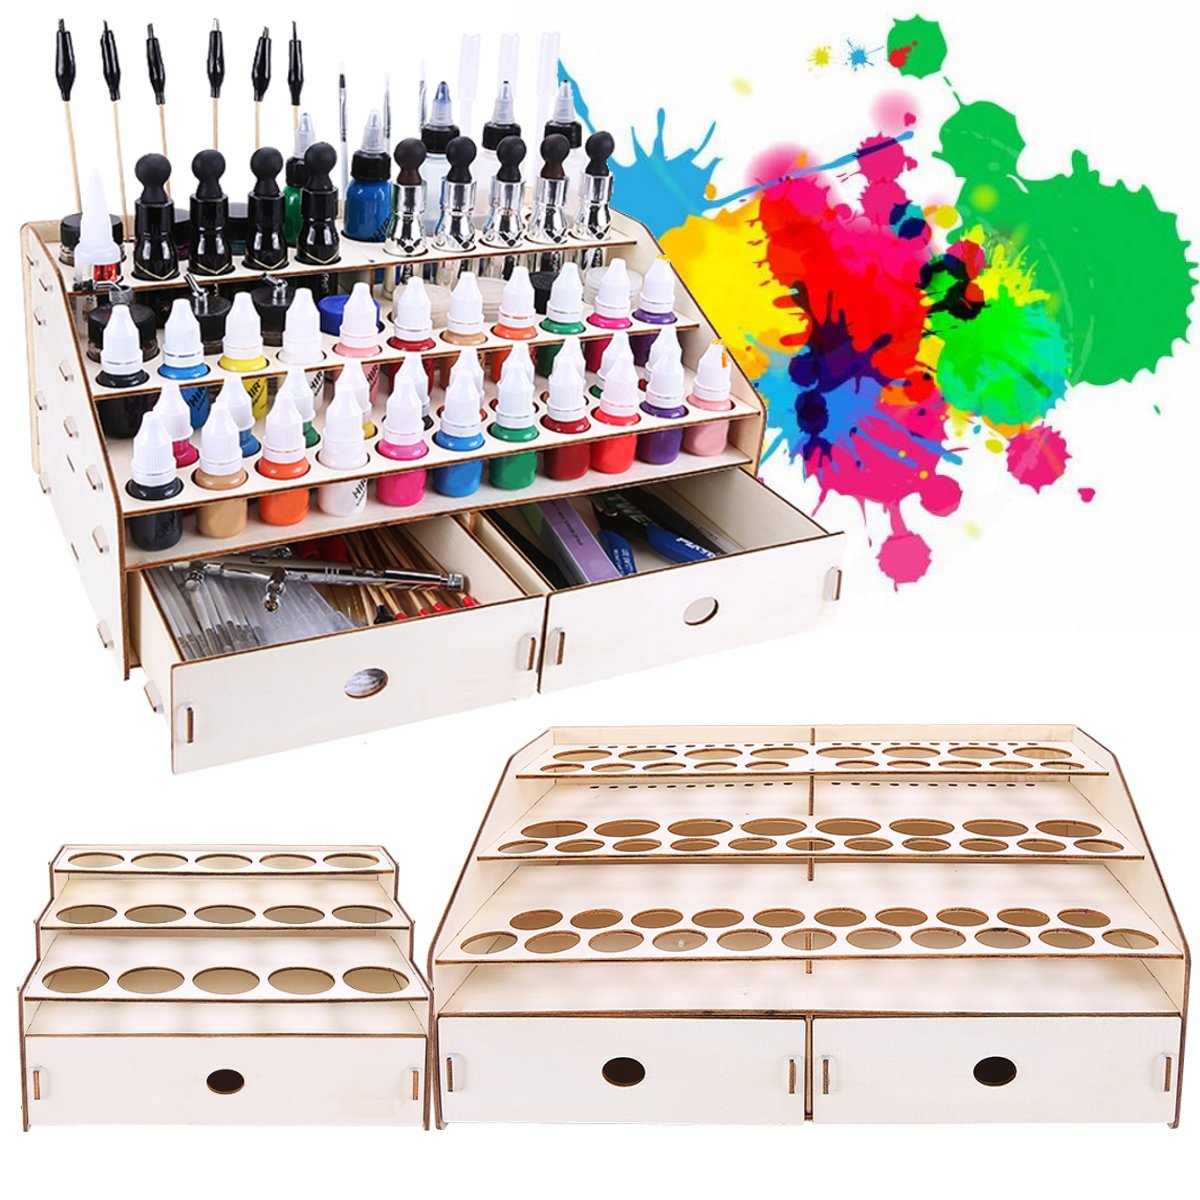 3 Layers Wooden Pigment Bottle Drawer Storage Organizer 15/80 Holes Color Paint Ink Brush Stand Rack Modular Holder